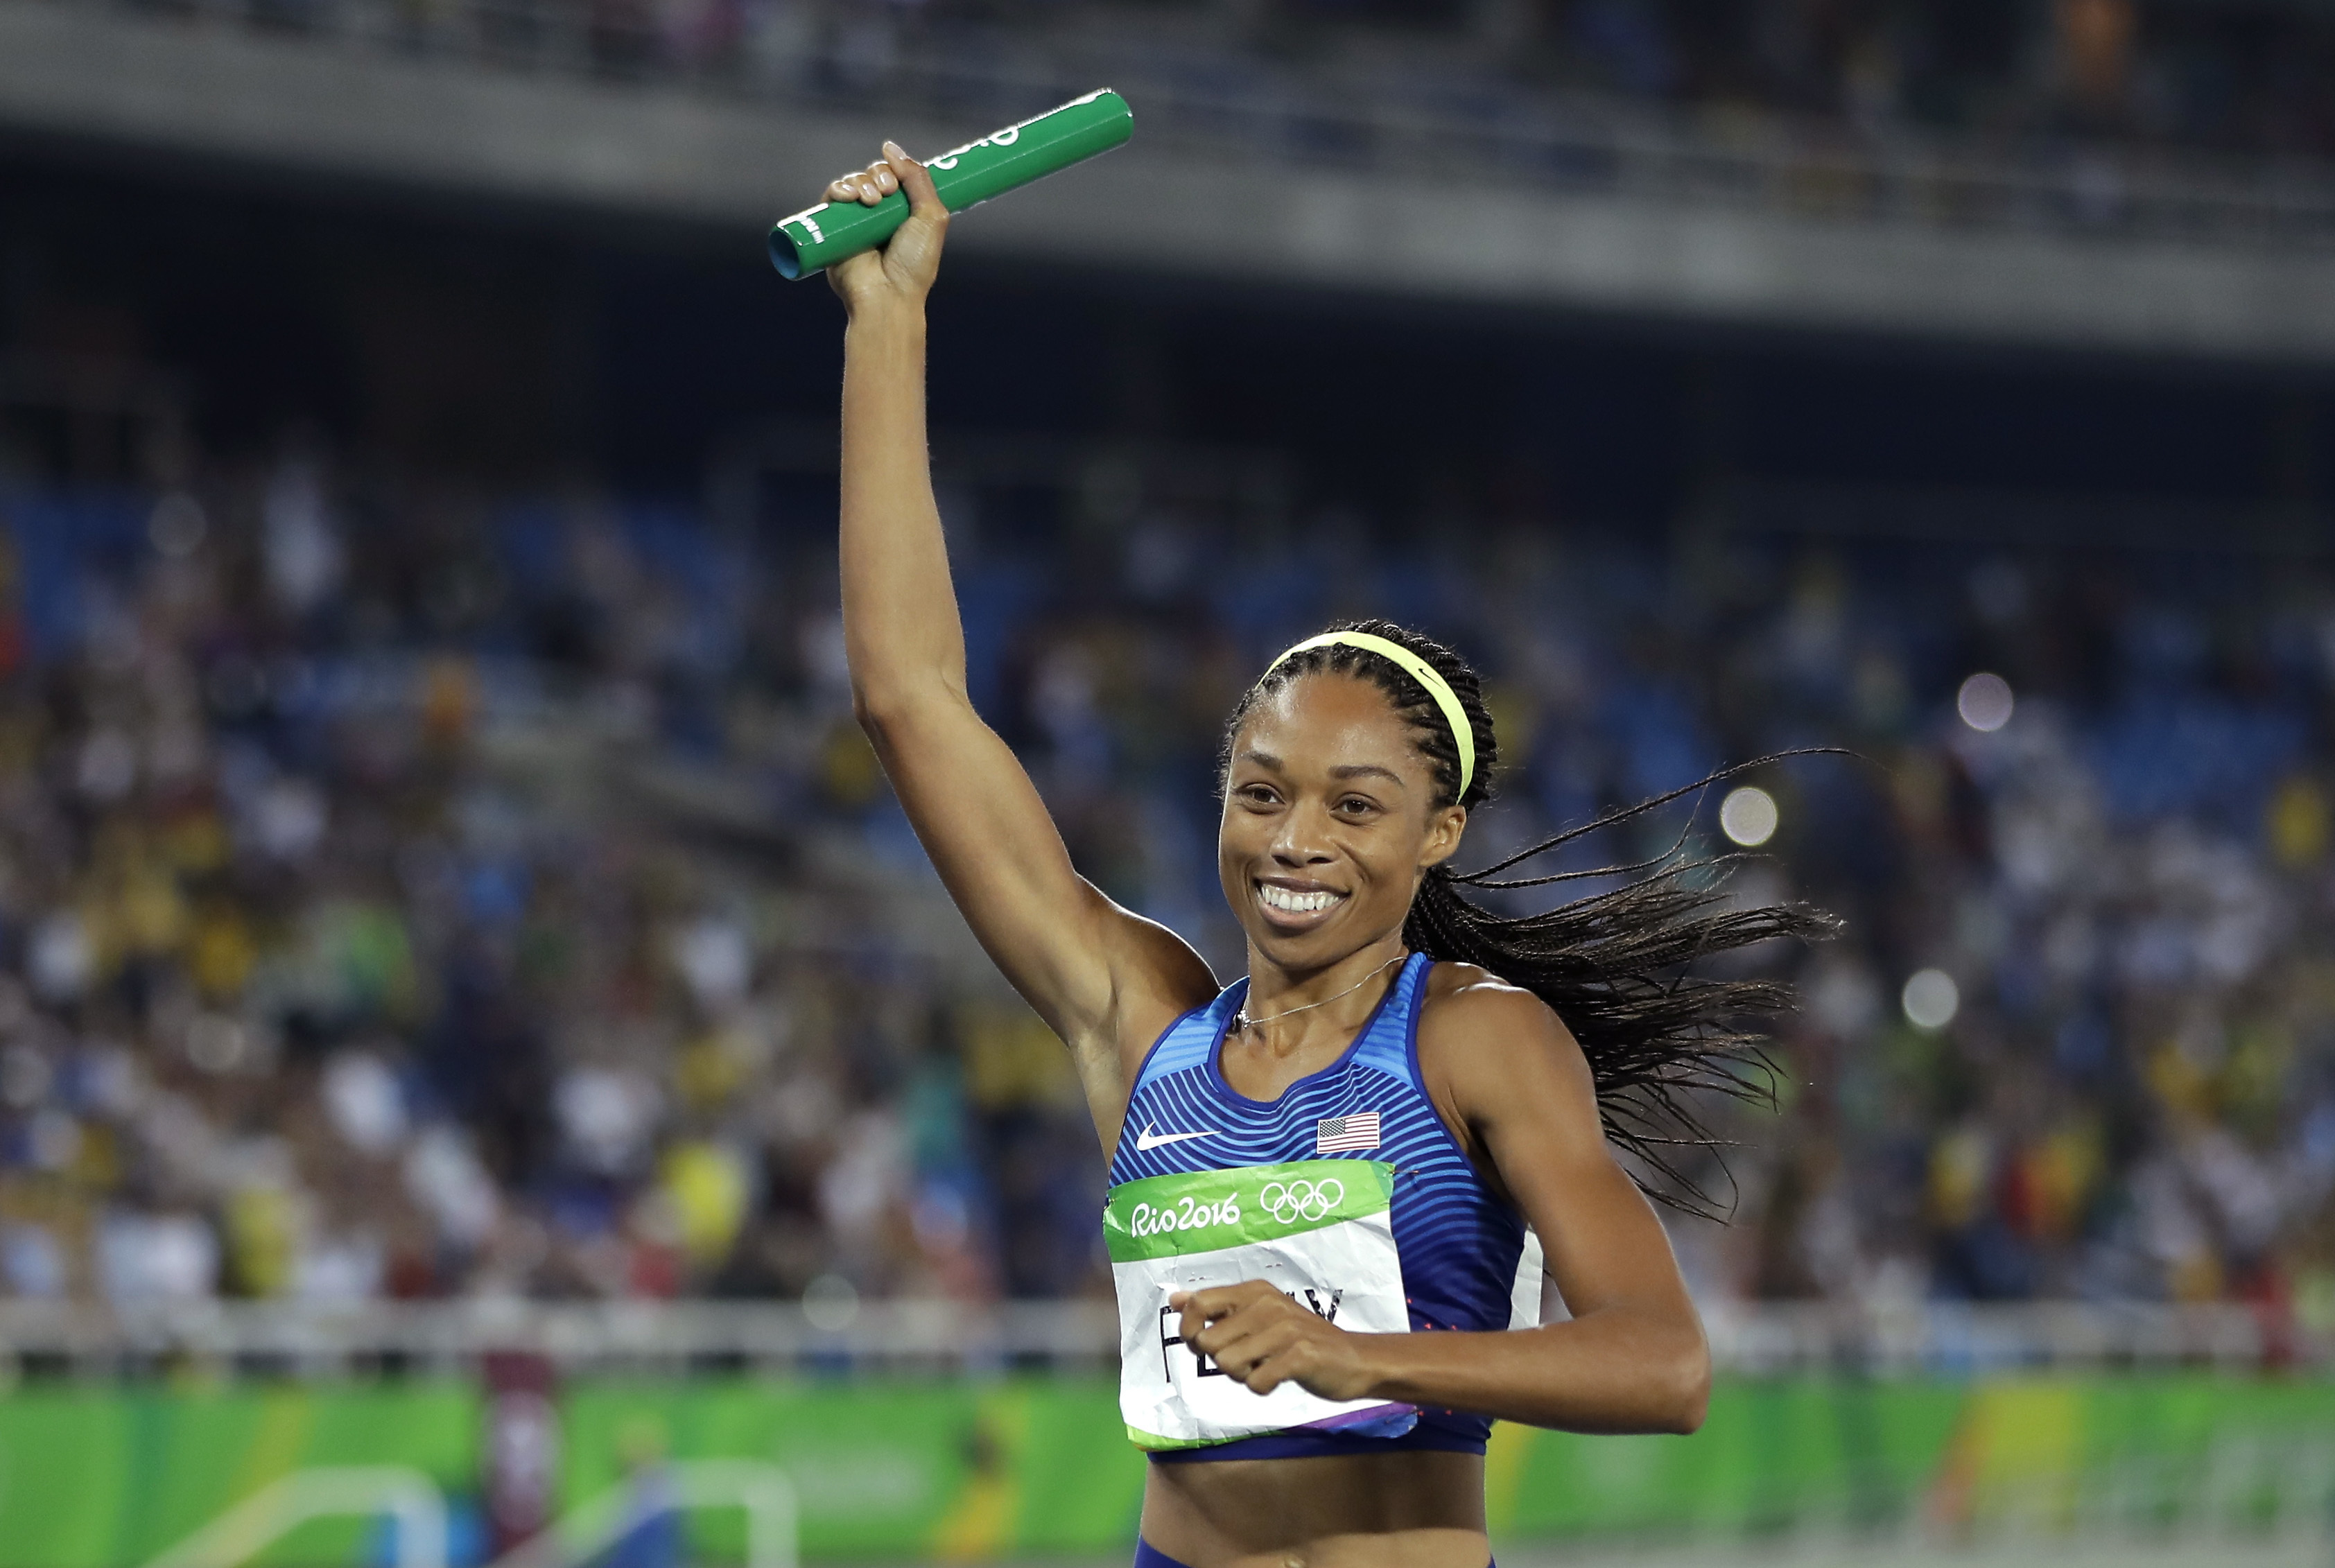 United States' Allyson Felix celebrates after winning the gold medal in the women's 4x400-meter relay final during the athletics competitions of the 2016 Summer Olympics at the Olympic stadium in Rio de Janeiro, Brazil, Saturday, Aug. 20, 2016. (AP Photo/Matt Slocum)